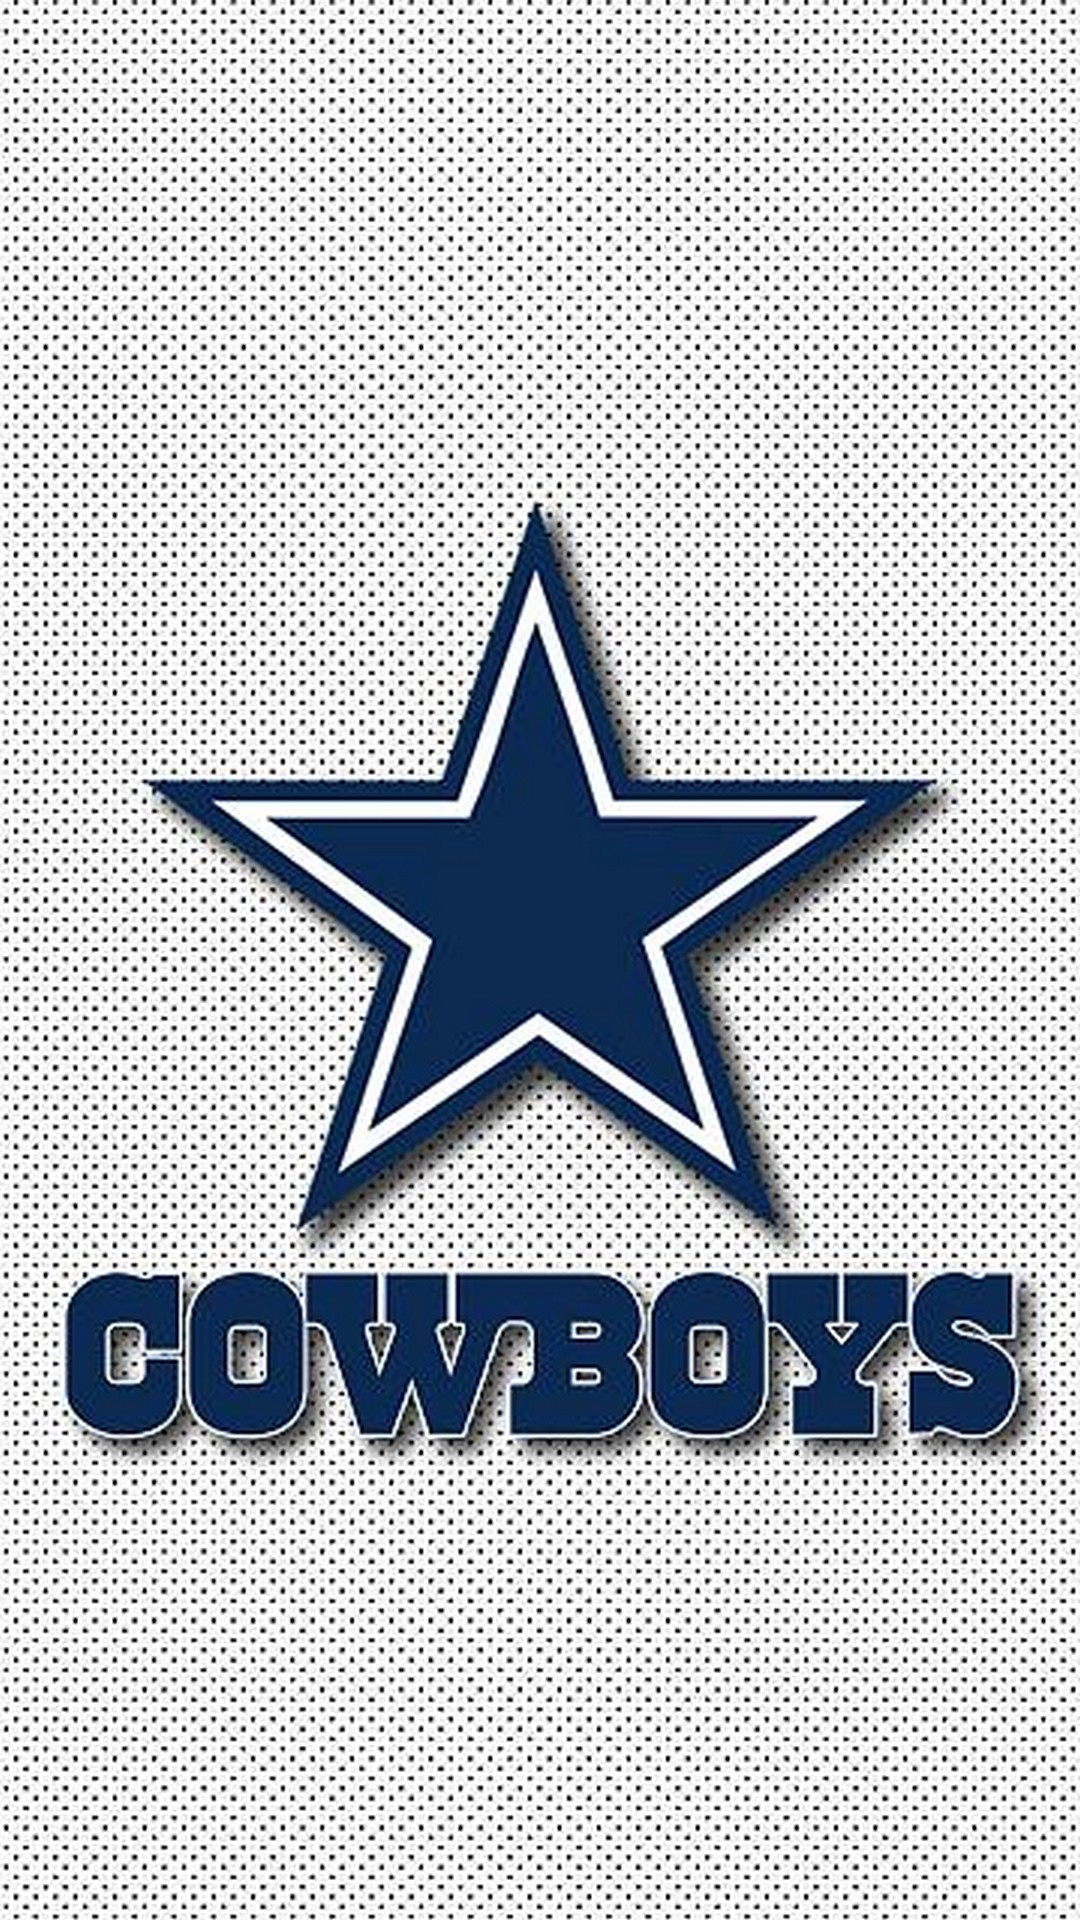 Dallas Cowboys Iphone Wallpaper Tumblr With High-resolution - Cowboys Iphone - HD Wallpaper